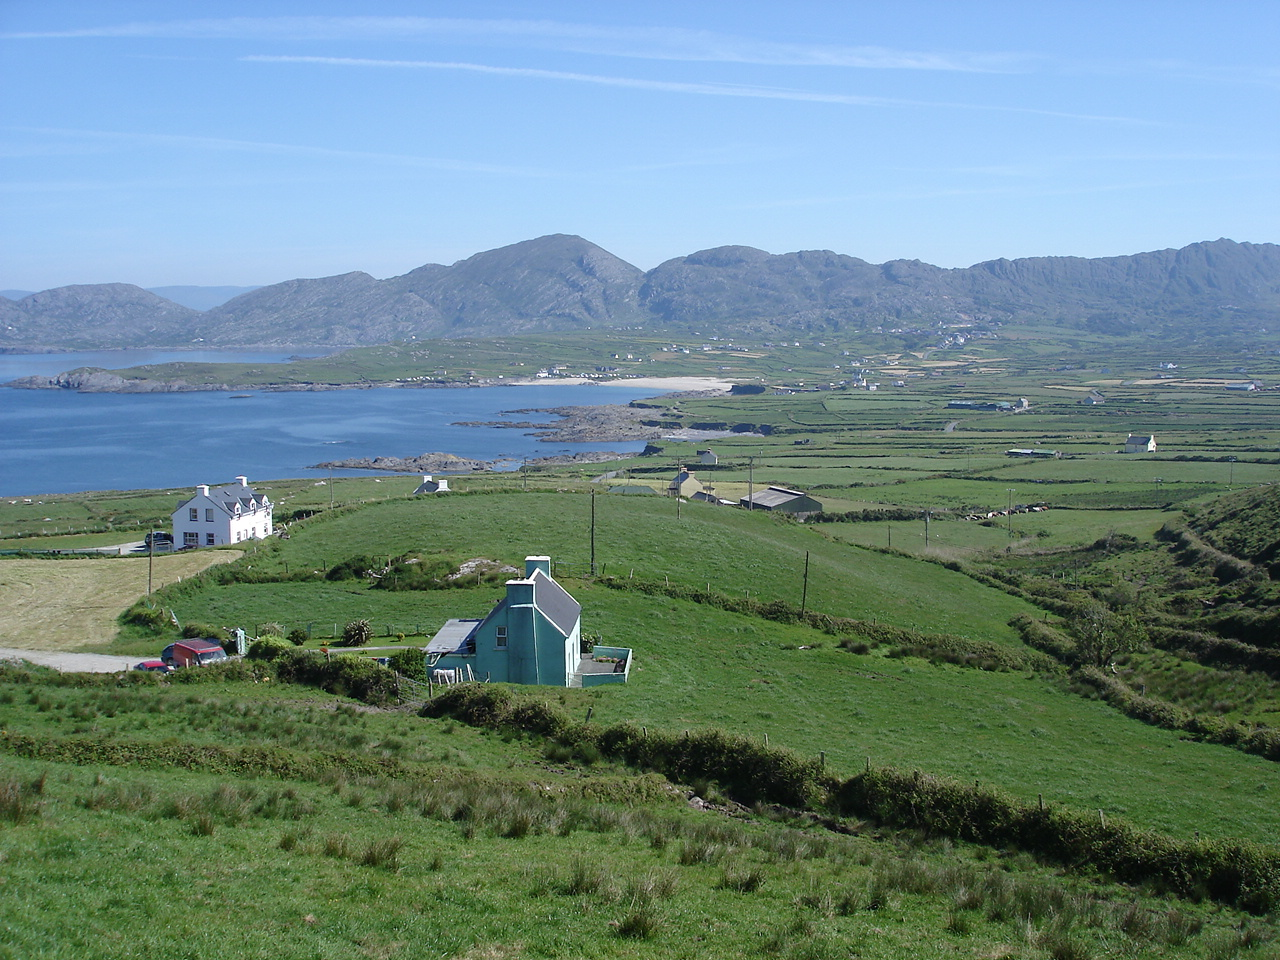 View over Allihies. Ballydonegan Bay is on the left.